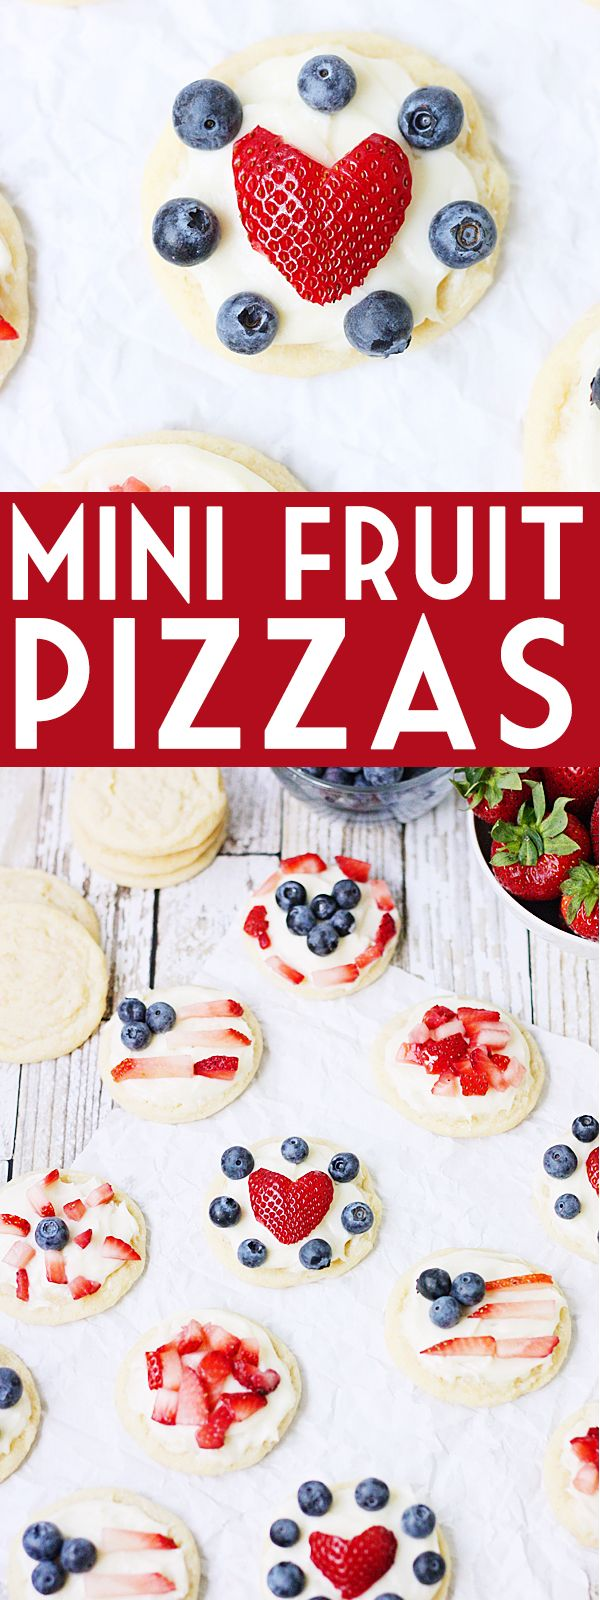 Mini Fruit Pizzas -- Mini fruit pizzas are a fun and festive dessert for the 4th of July or any celebration! Top them with berries, diced kiwi...even mandarin oranges! | isthisreallymylife.com